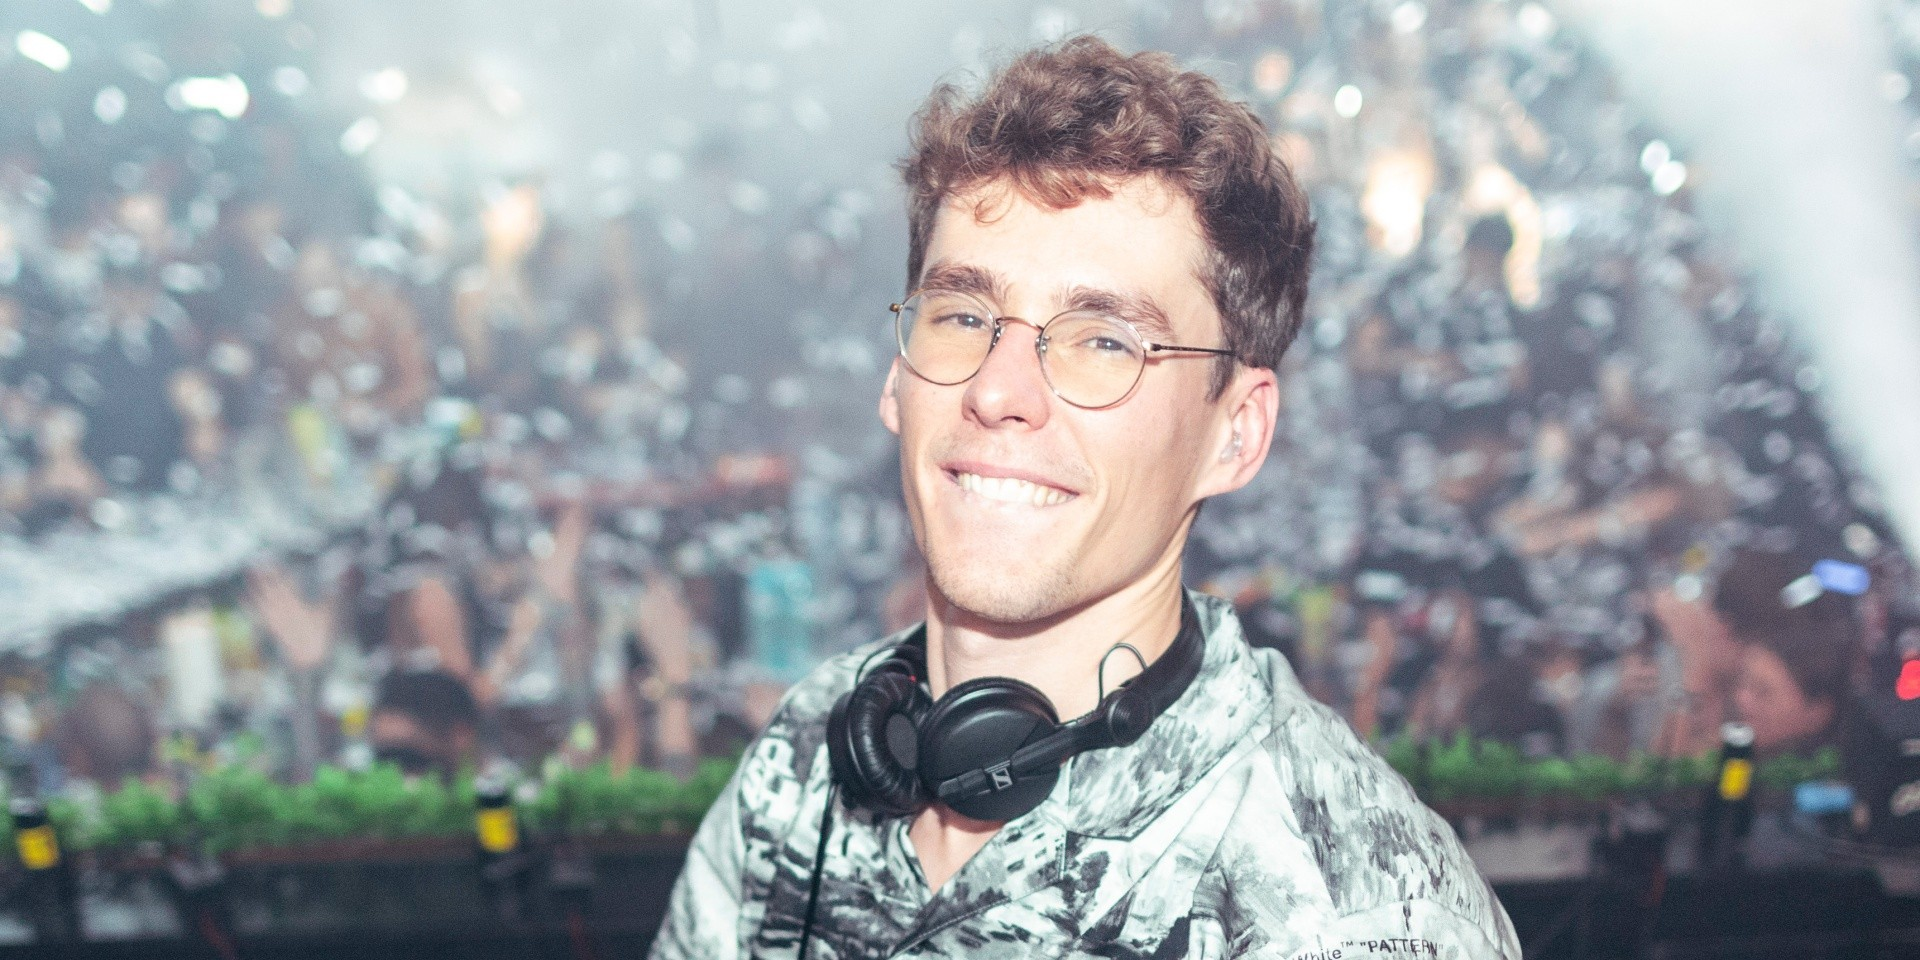 """""""I go a little crazy sometimes"""": An interview with Lost Frequencies"""